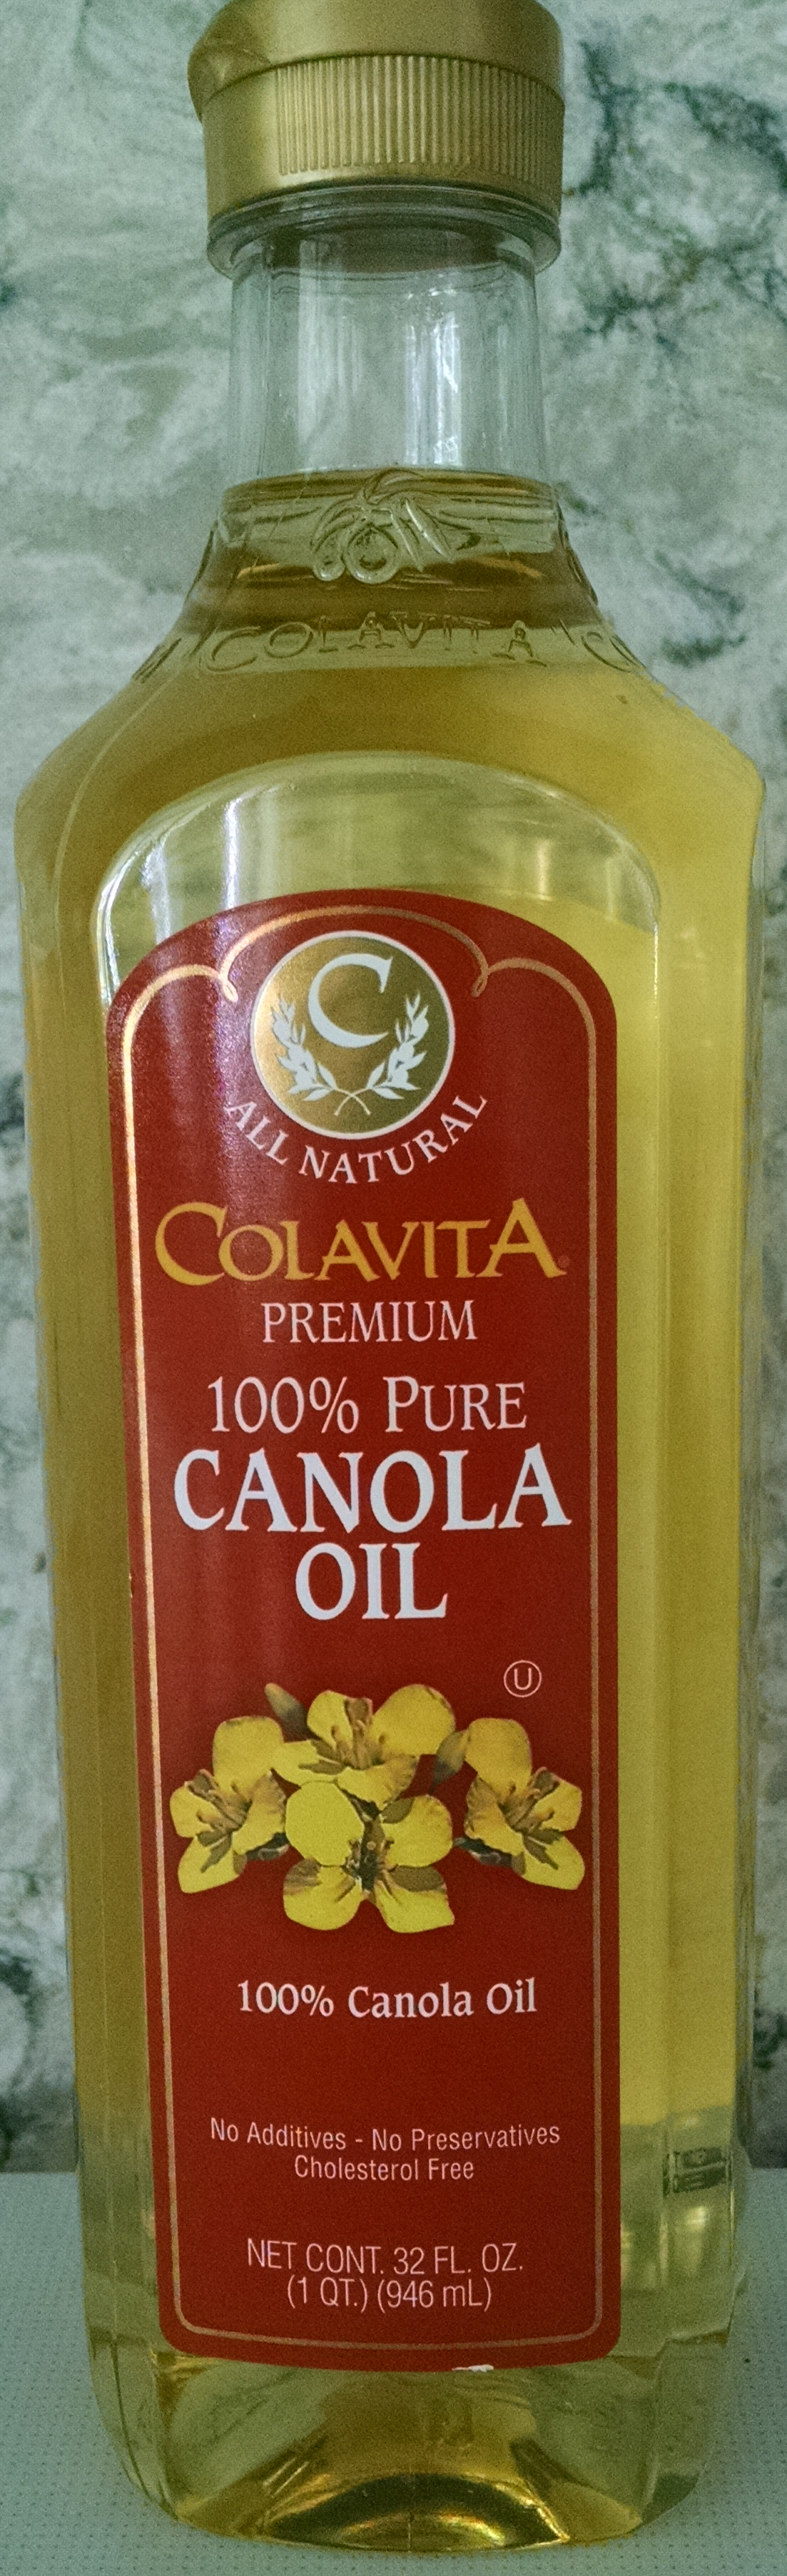 bottle of canola oil